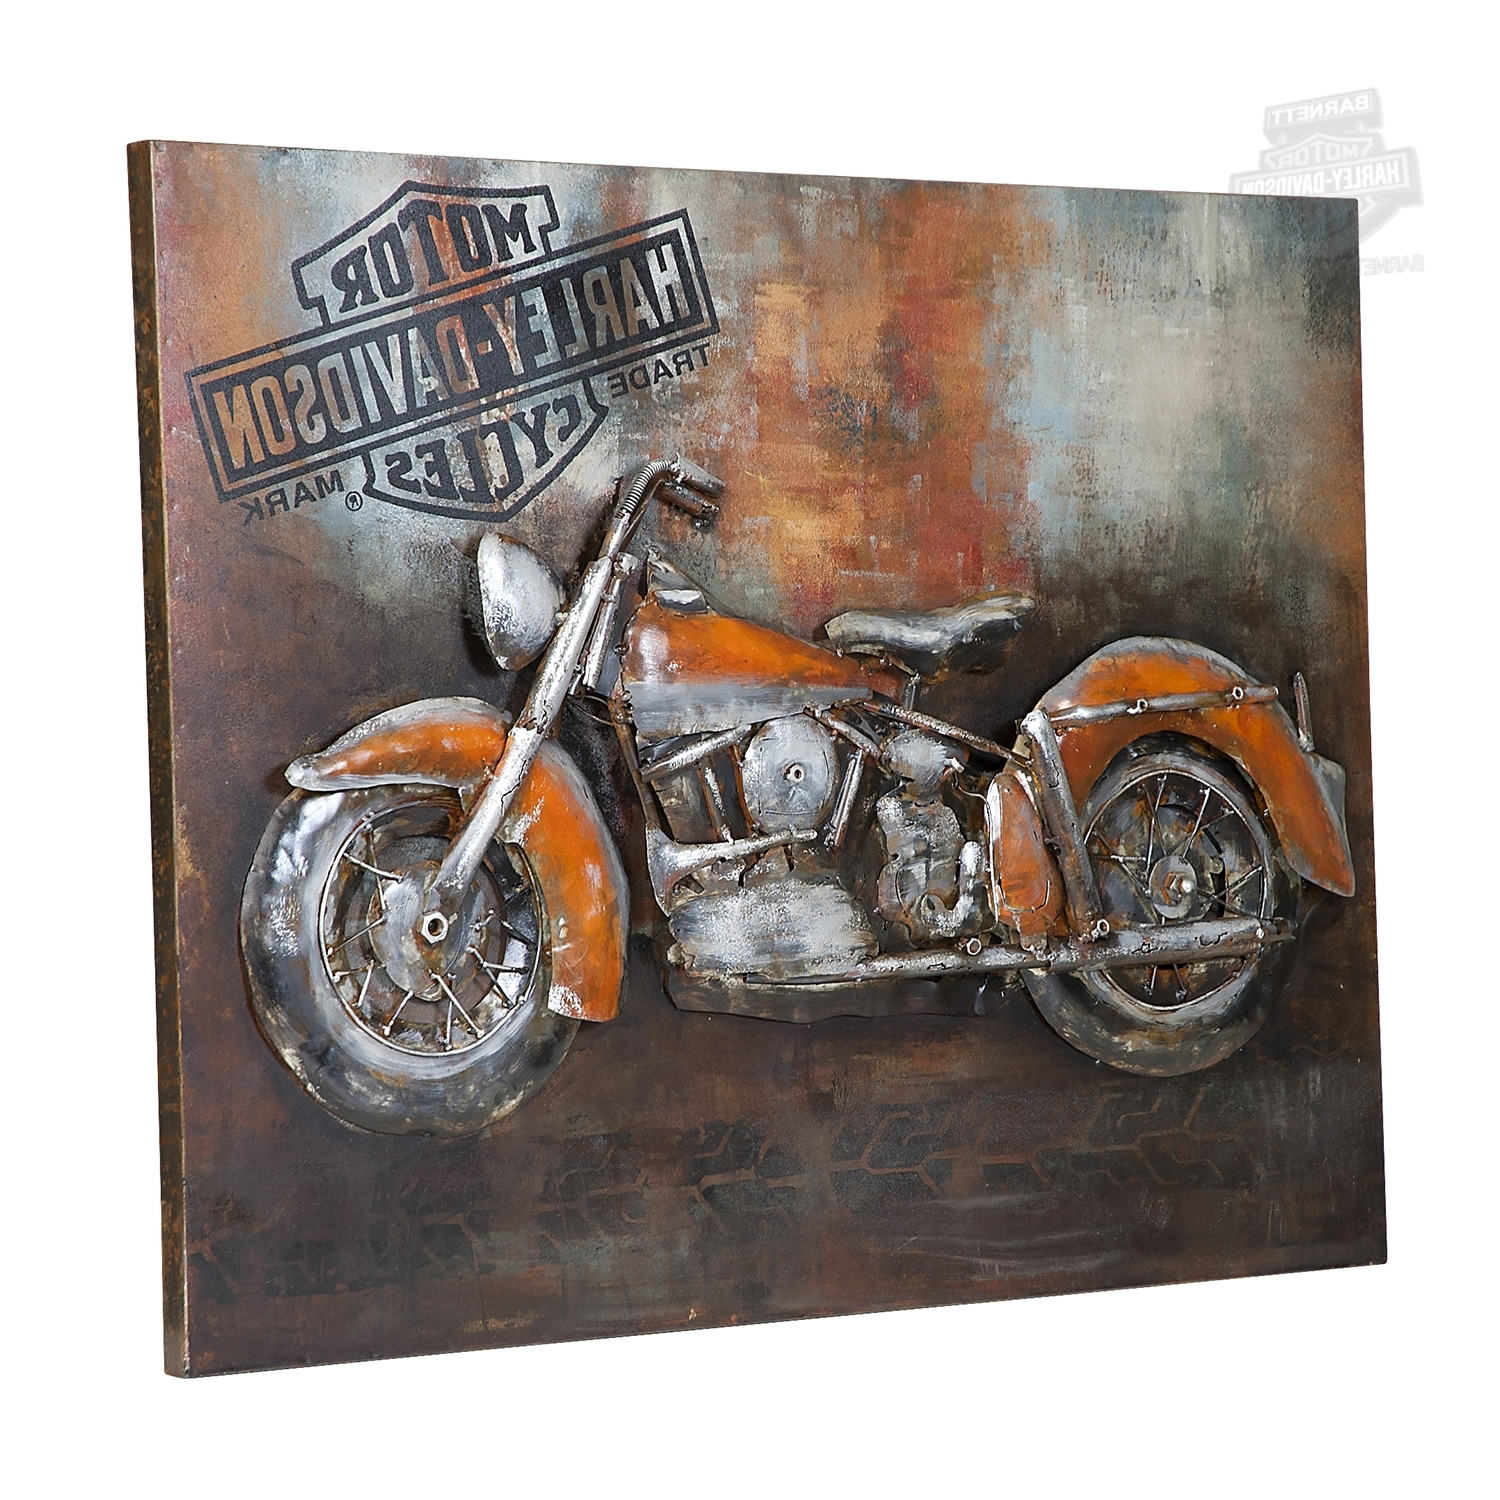 2017 Wall Art Designs: Harley Davidson Wall Art Harley Davidson Limited Throughout Limited Edition Wall Art (View 1 of 15)